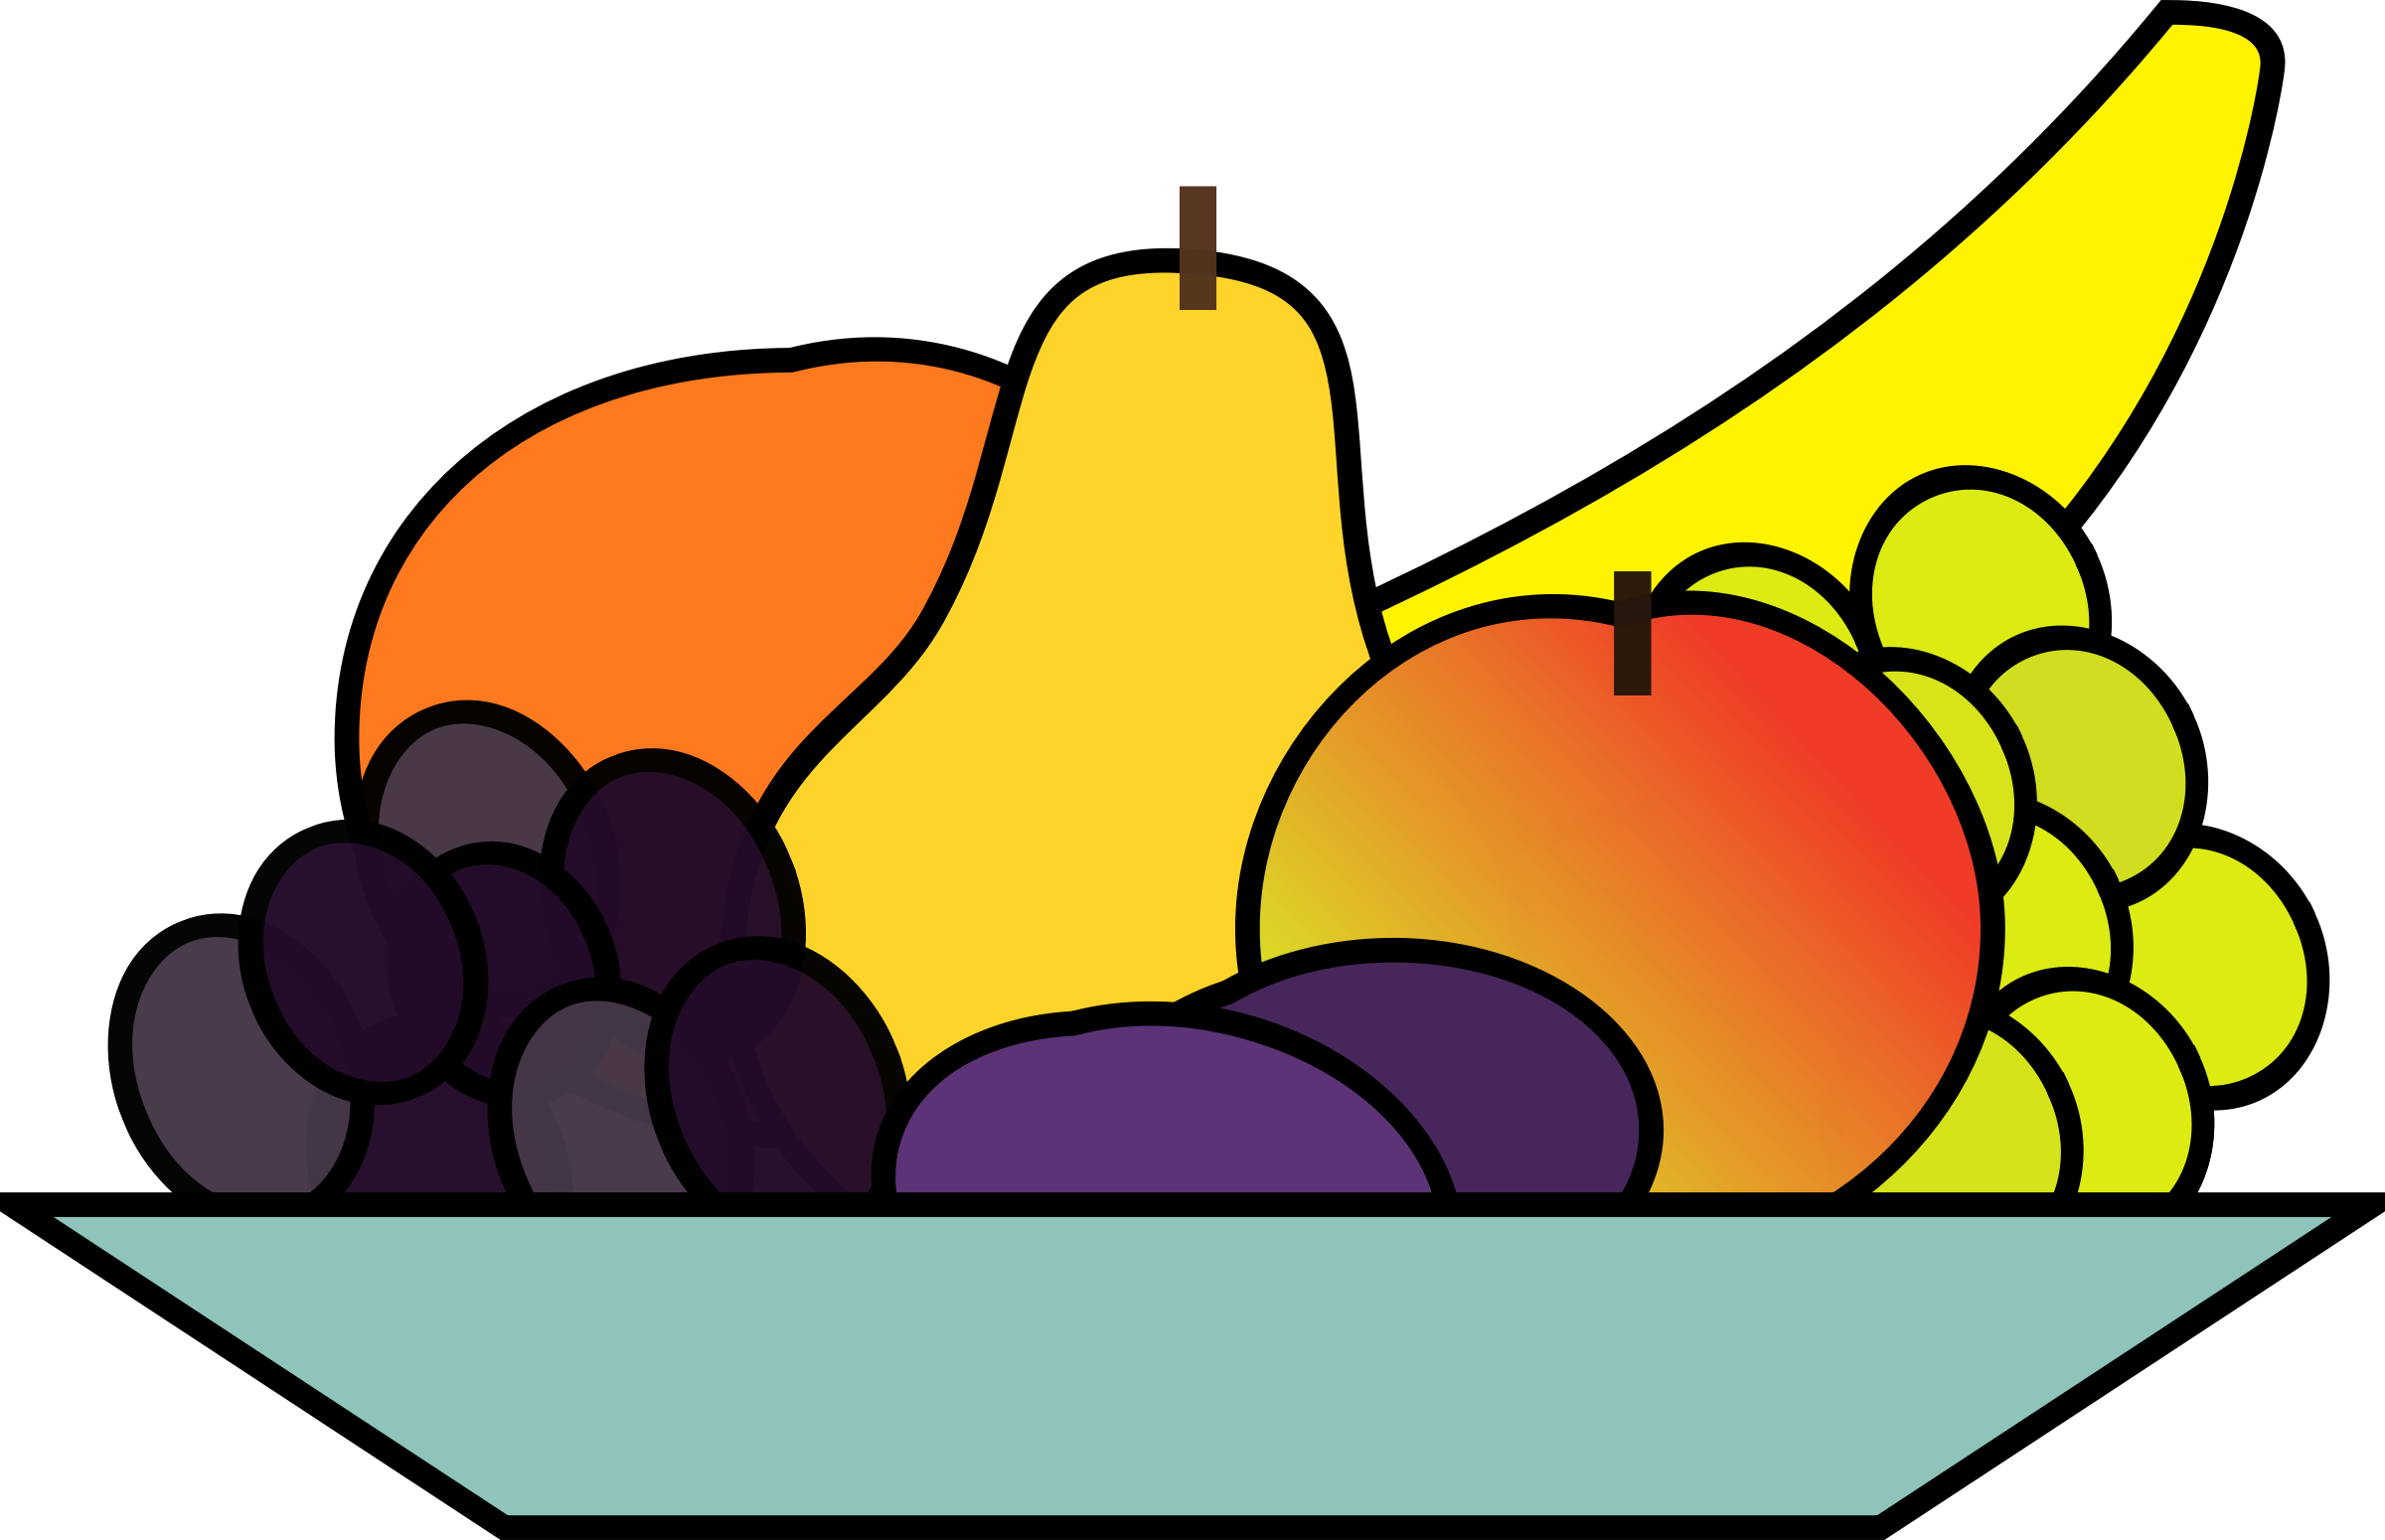 Fruit clipart fruit tray. Plate big image png